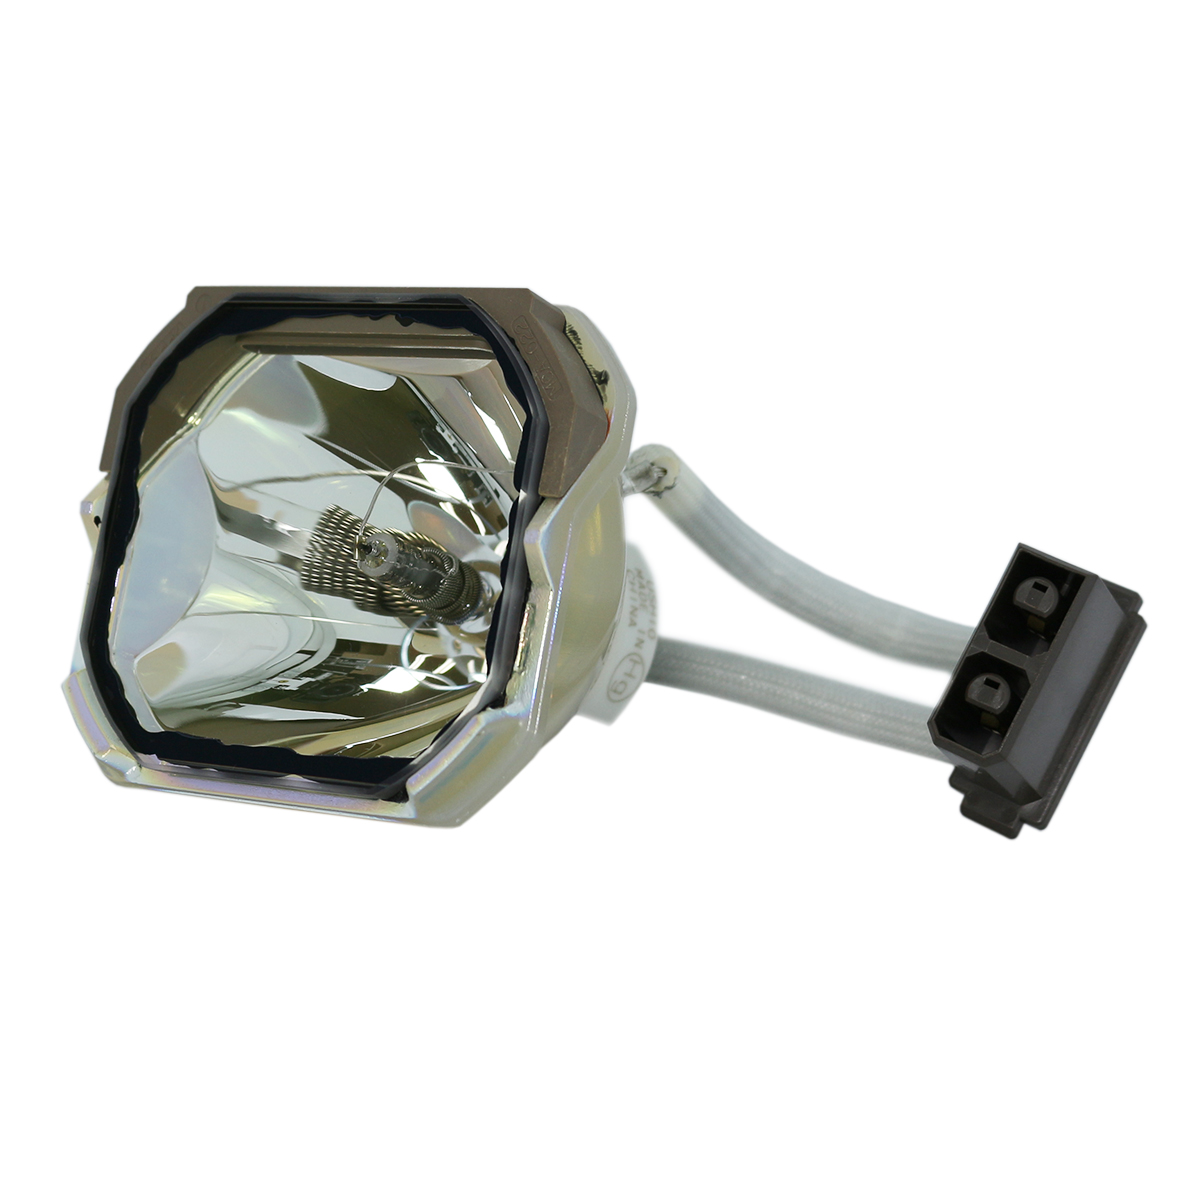 Compatible Bulb LMP-P201 for SONY VPL-PX21 VPL-PX32 VPL-VW11HT VPL-VW12HT VPL-PX31 VPL-11HT Projector Lamp Bulb wihout housing original replacement projector lamp bulb lmp f272 for sony vpl fx35 vpl fh30 vpl fh35 vpl fh31 projector nsha275w